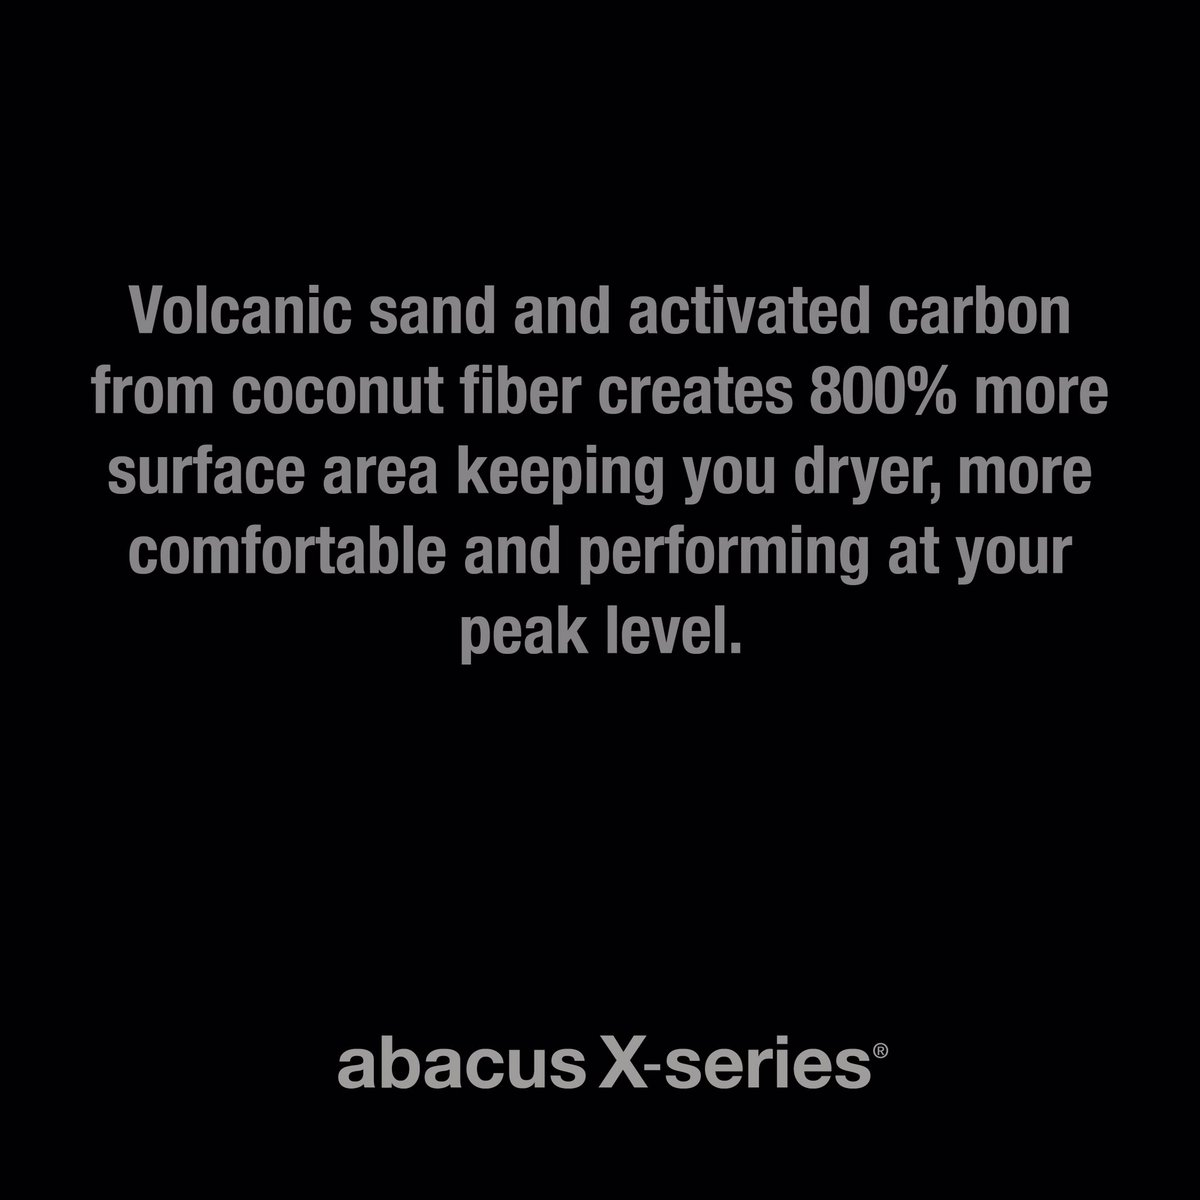 #abacussportswear #countonit #abacusxseries #thirtysevenfive #thirtysevenfivetechnology #extremeperformance #performancebeyondyourexpectations #sportswear #technicalclothing